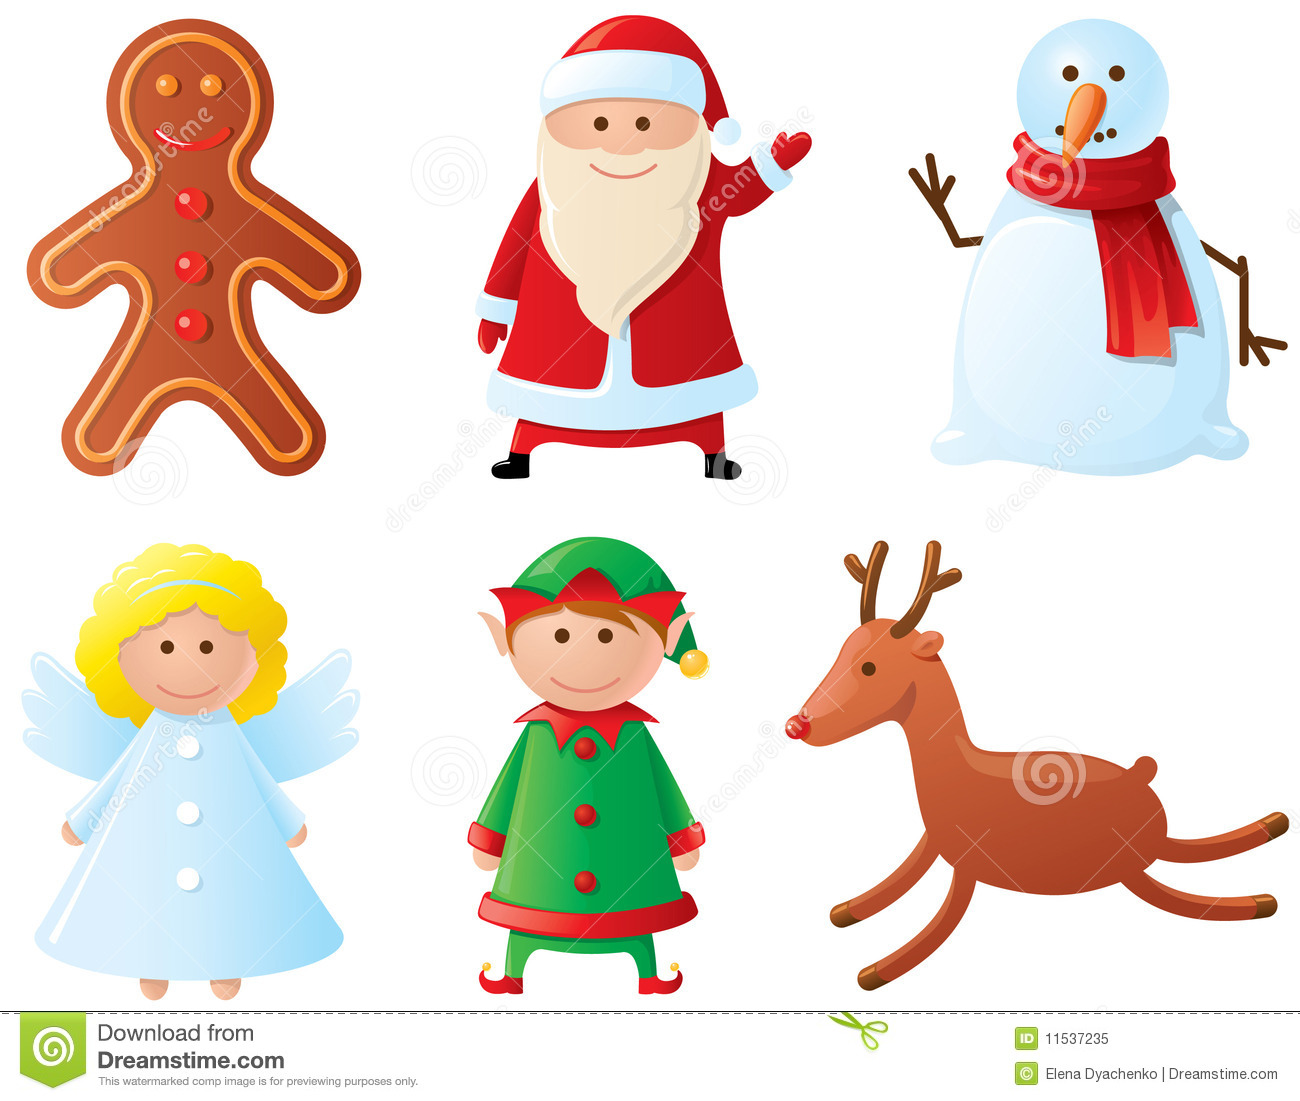 Christmas characters stock vector. Illustration of